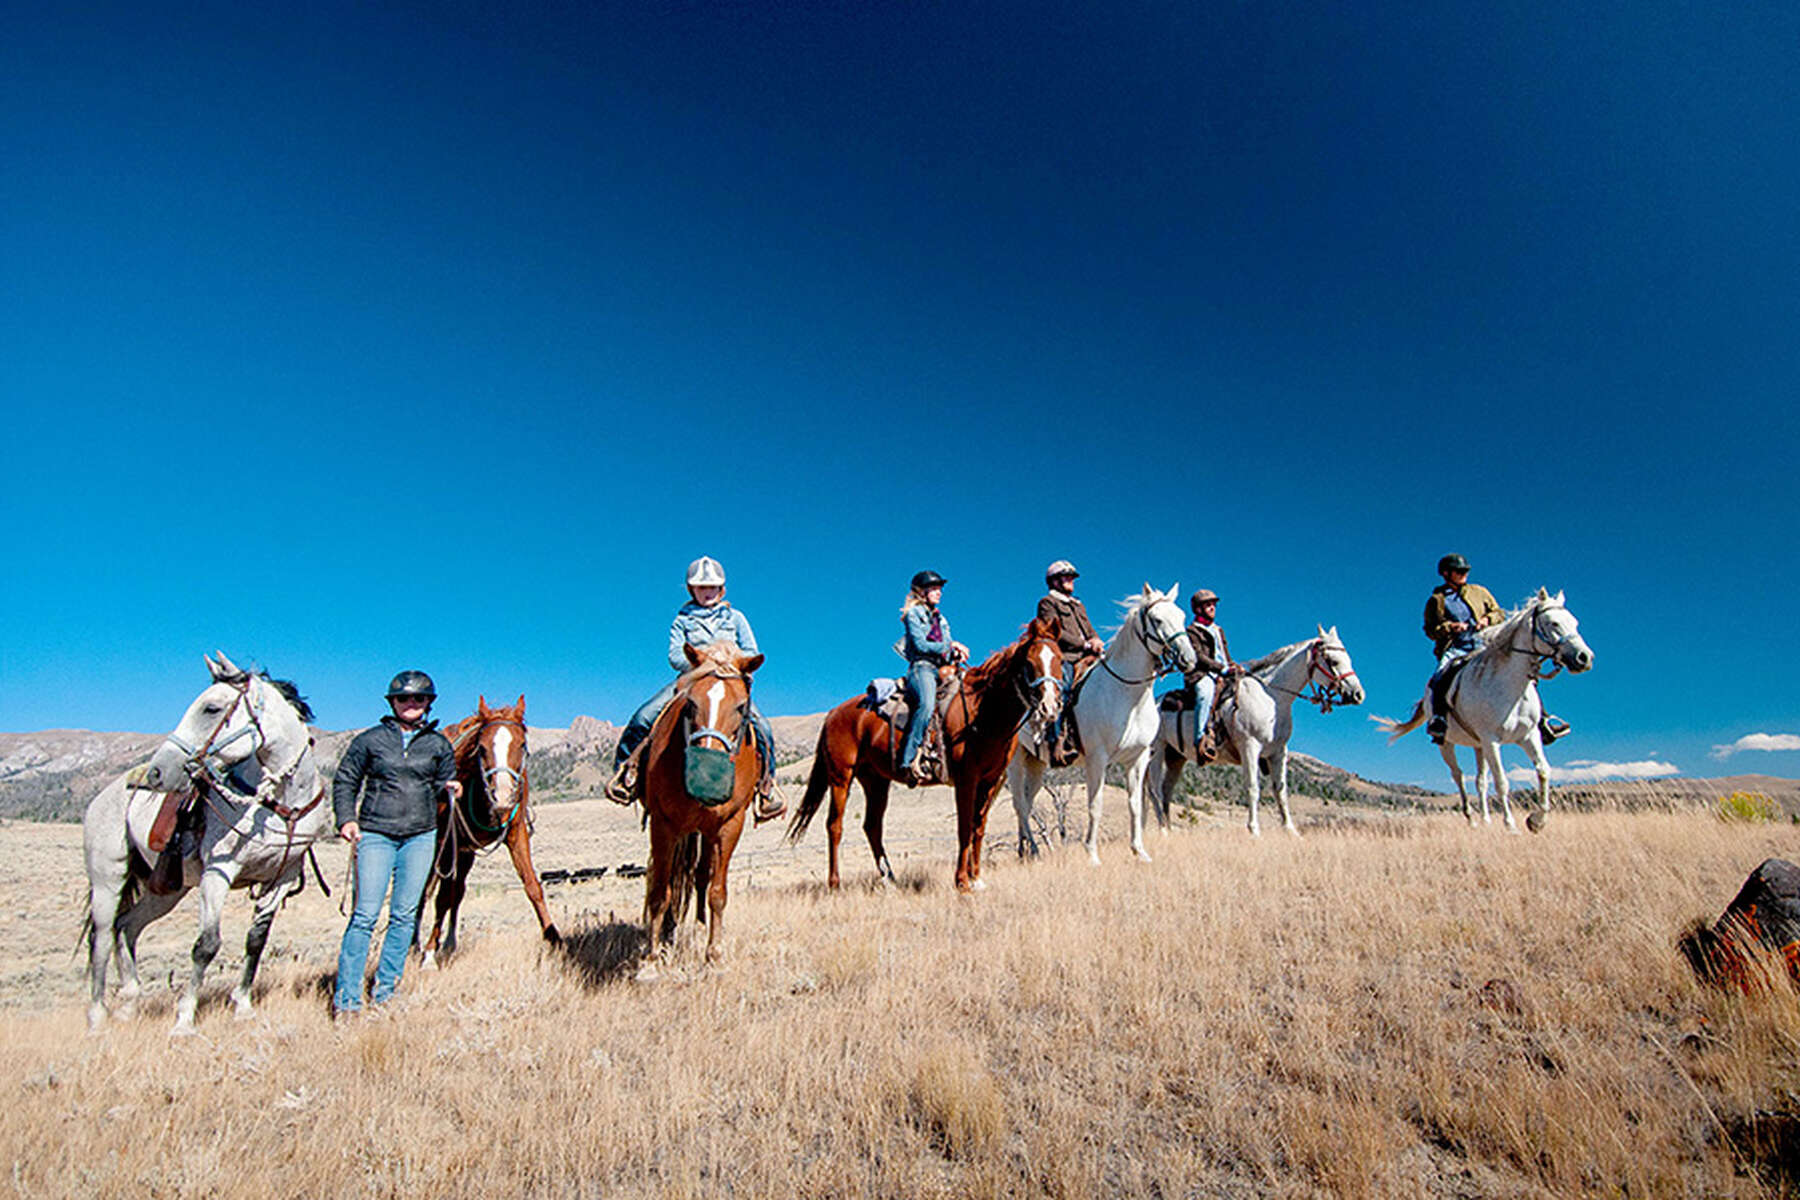 Riders and horses in Wyoming, USA